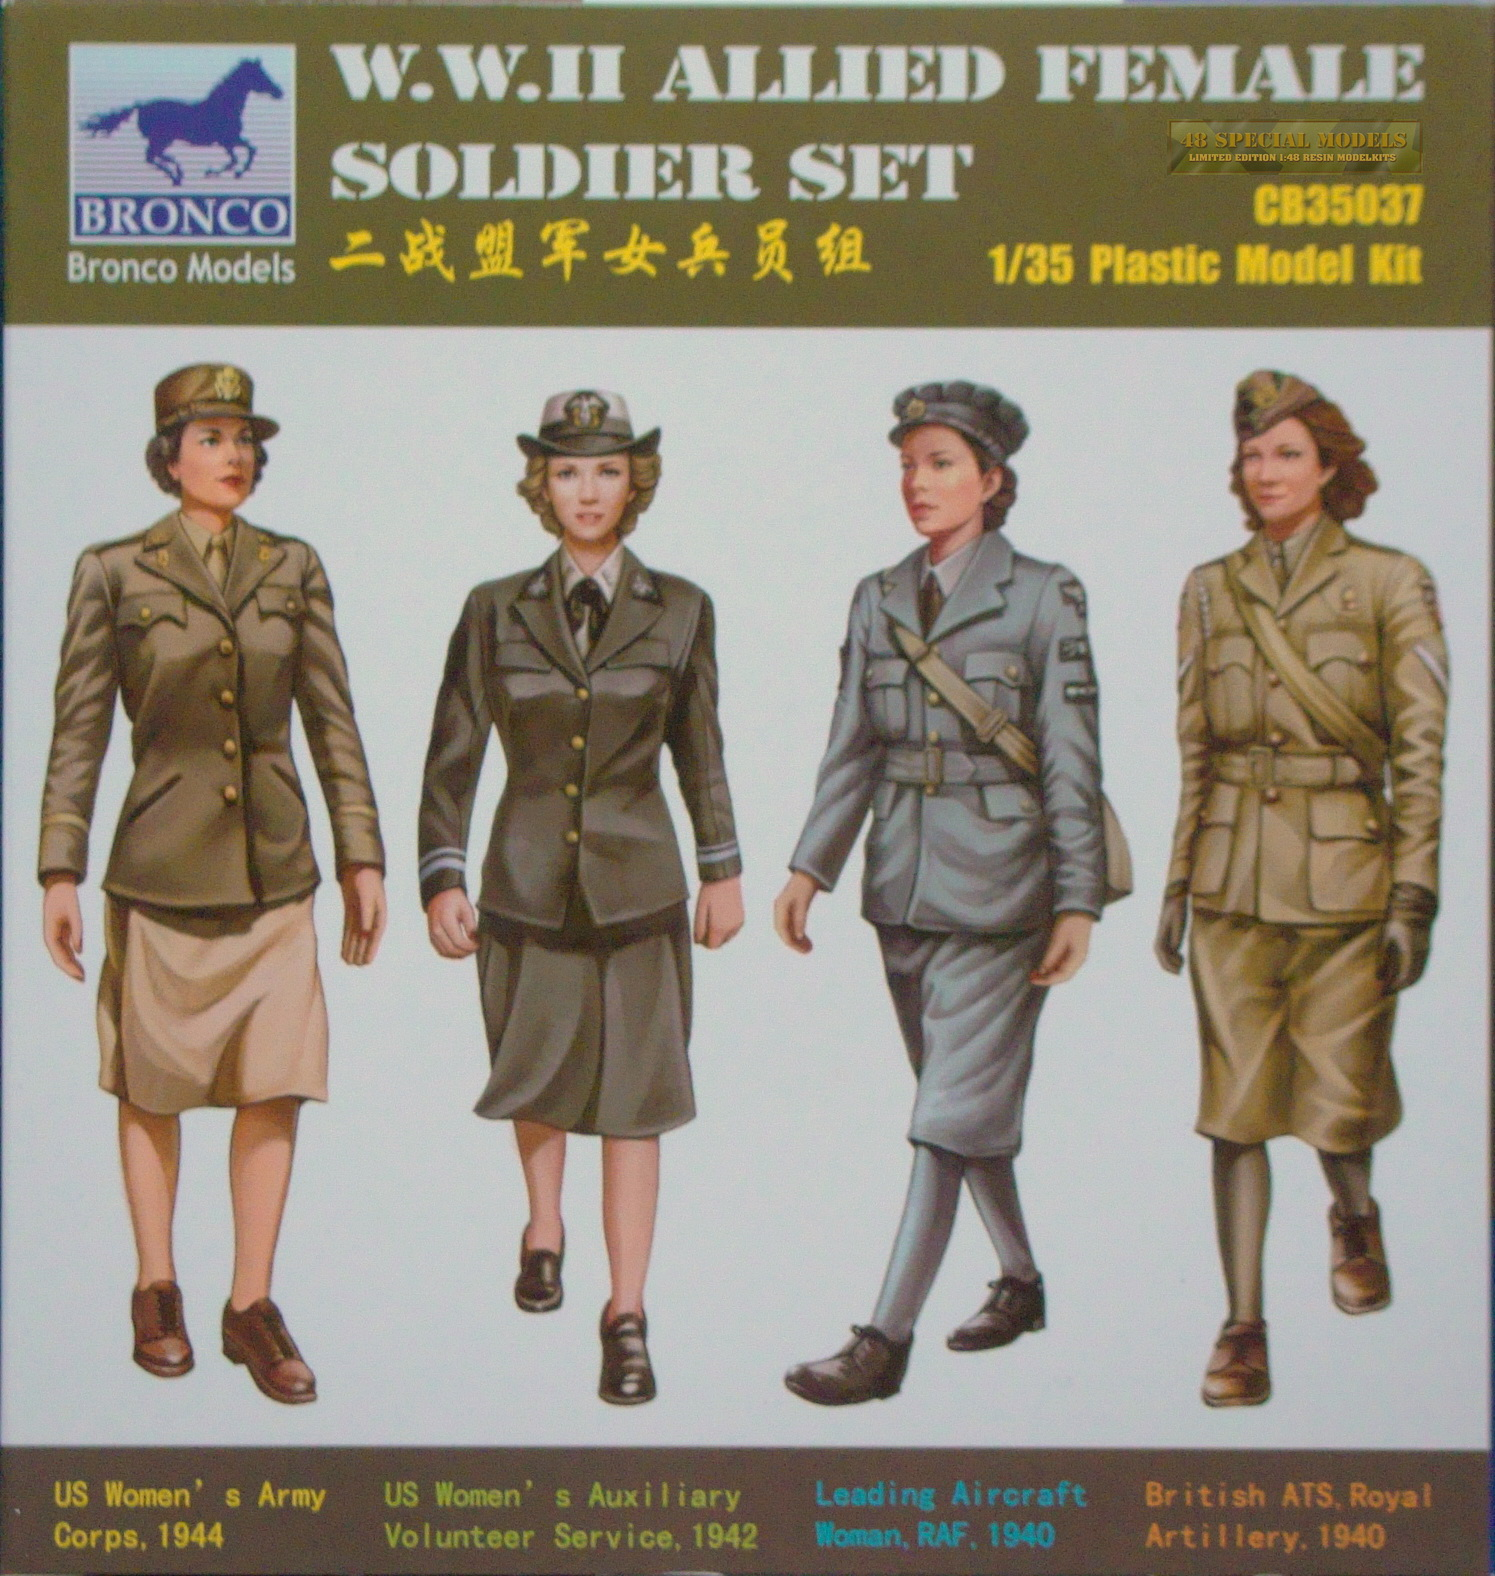 cb35037-Female-Soldier-Set.jpg